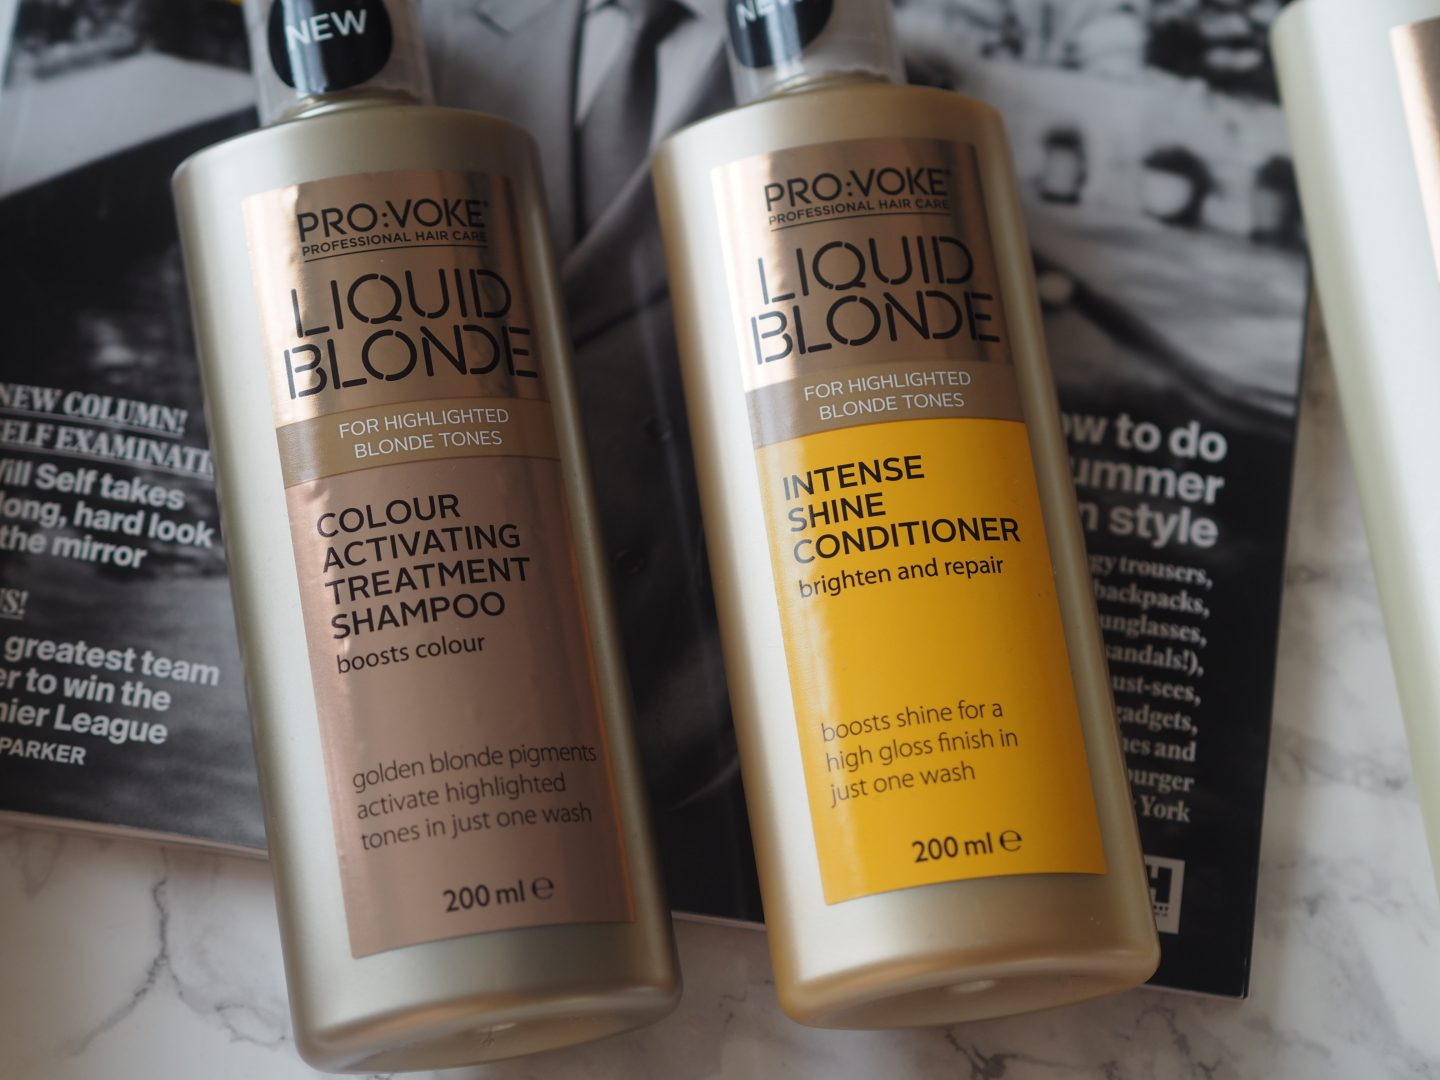 Pro:voke Liquid Blonde - Product: Intense Shine Conditioner & Colour Activating Treatment Shampoo